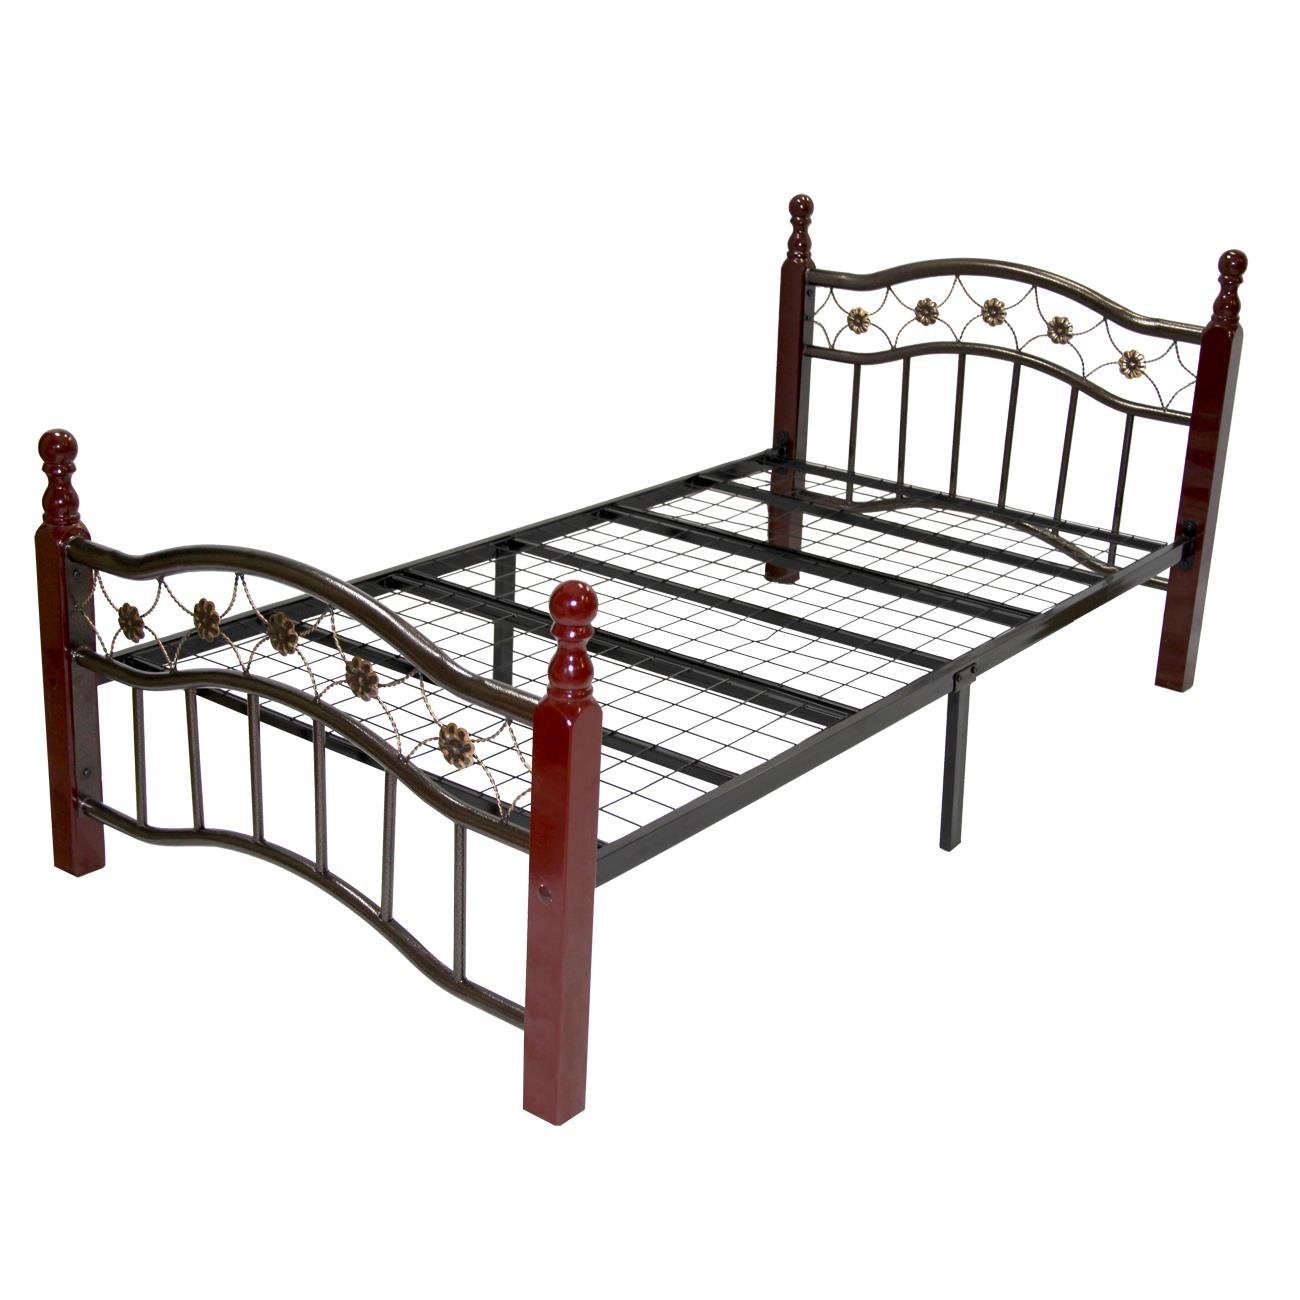 Home furnishings twin size decorative queen metal bed with wooden posts ebay Home furniture queen size bed